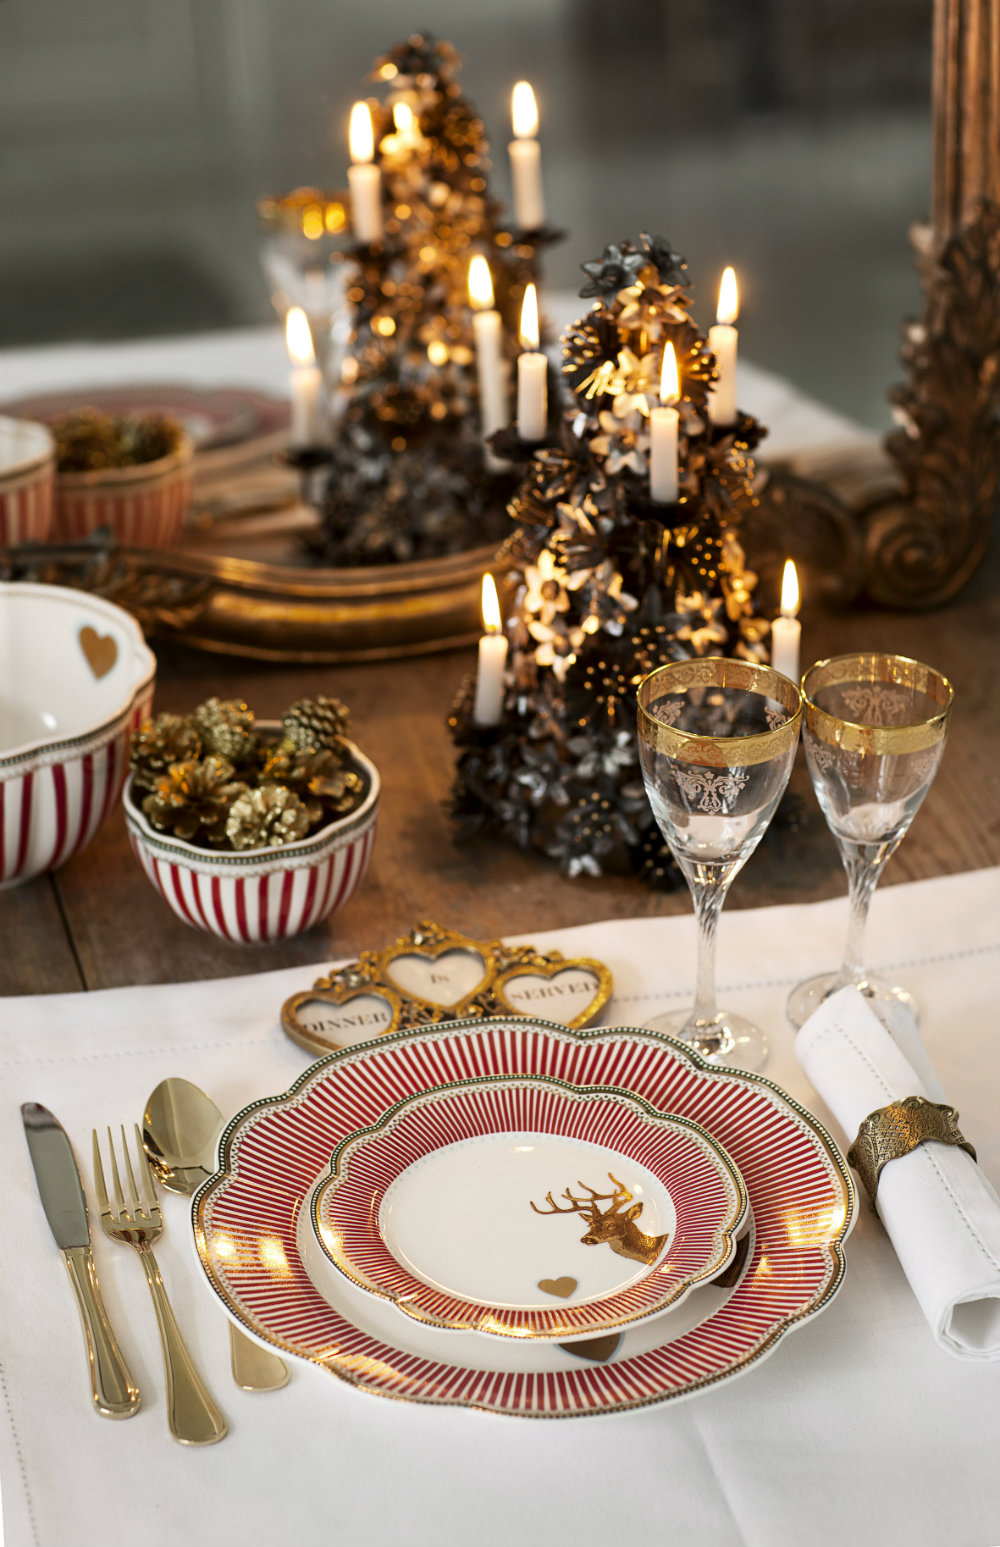 7 Chic Christmas Decorations for The Most Memorable Holiday 05 chic christmas decorations 7 Chic Christmas Decorations for The Most Memorable Holiday 7 Chic Christmas Decorations for The Most Memorable Holiday 05